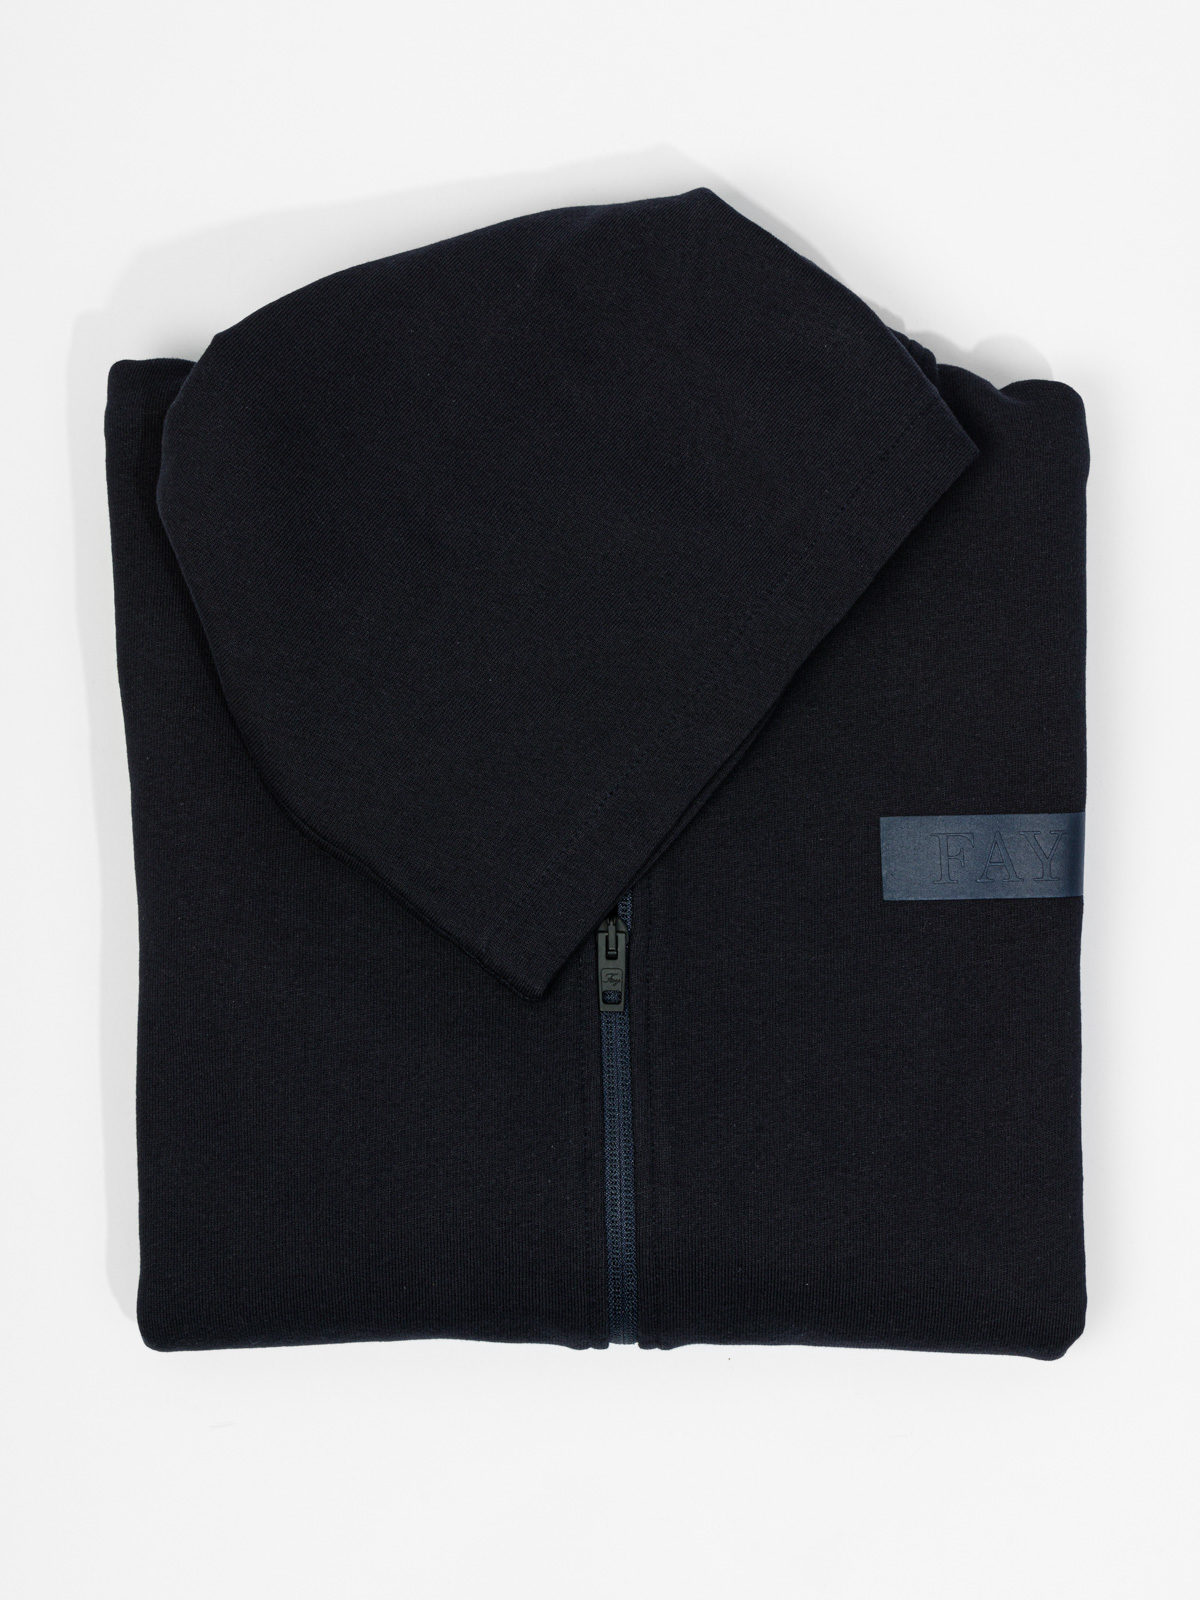 FAY FLORENCE BLUE NAVY SWEATER